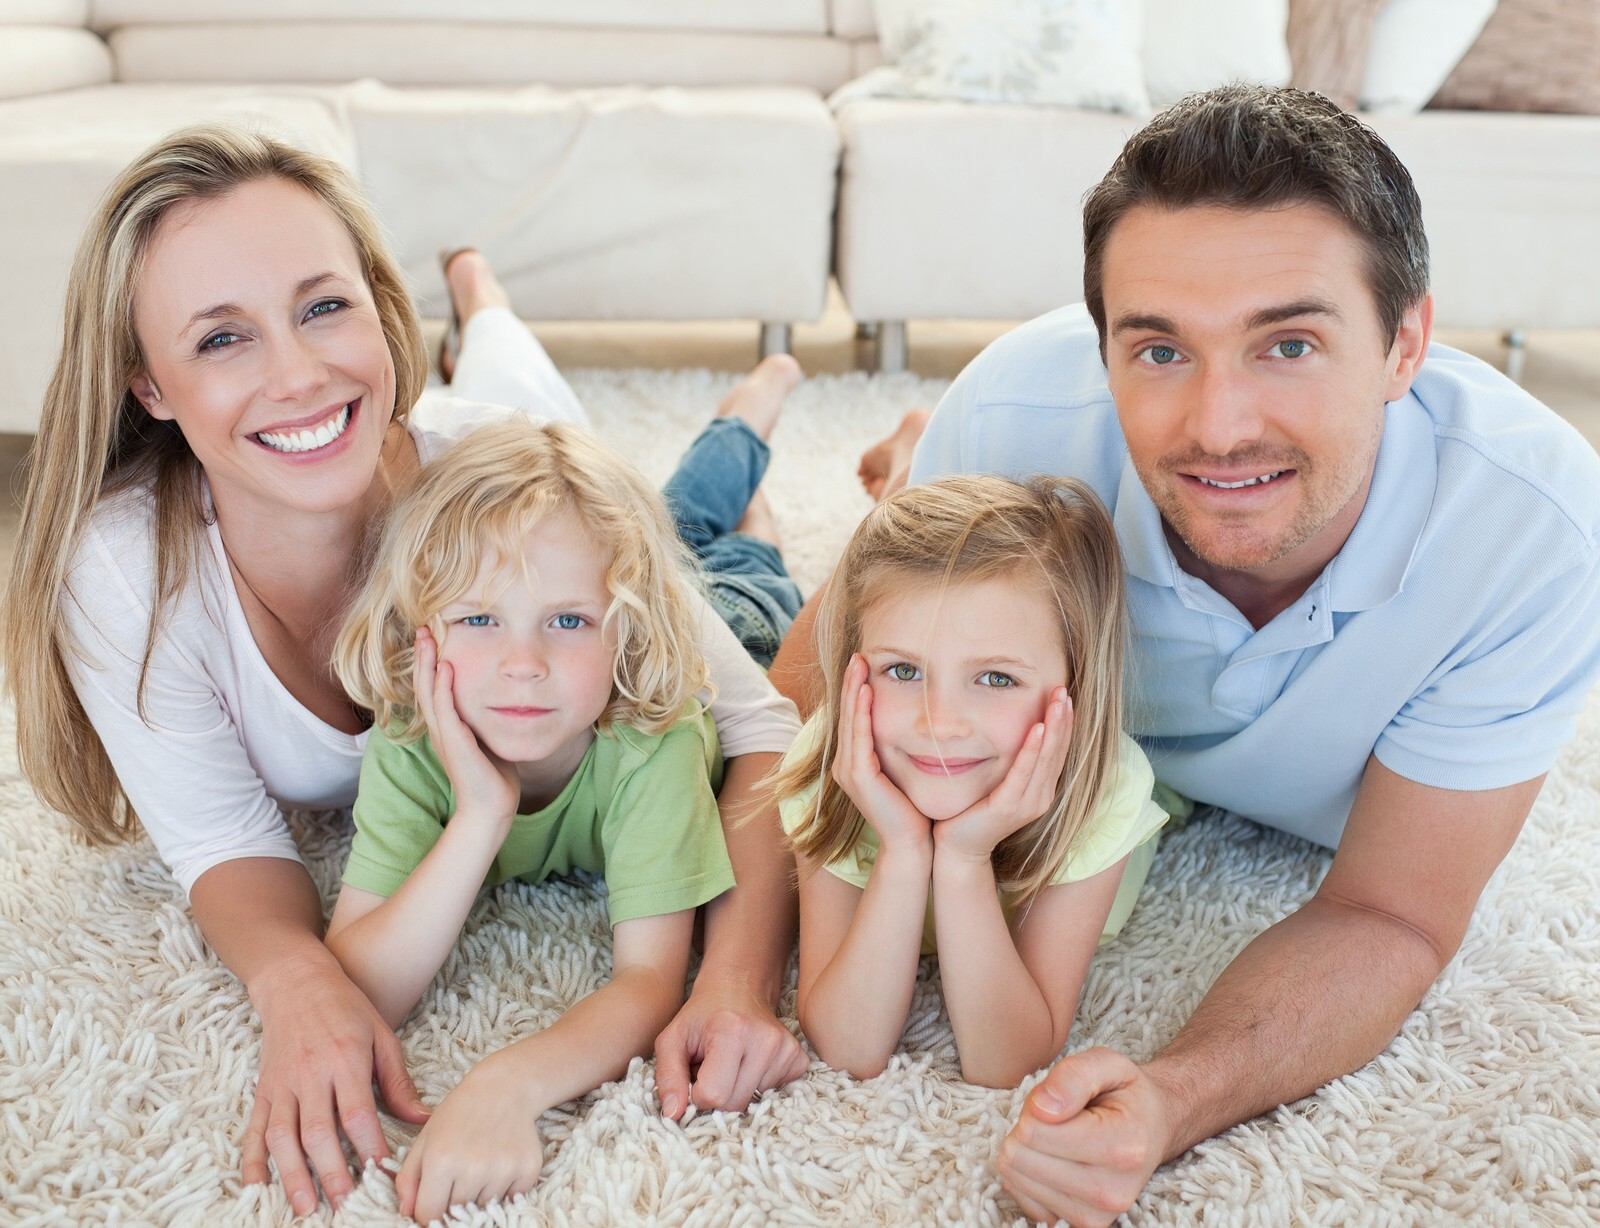 best carpet cleaning companies in woodbridge. Satisfaction is guaranteed